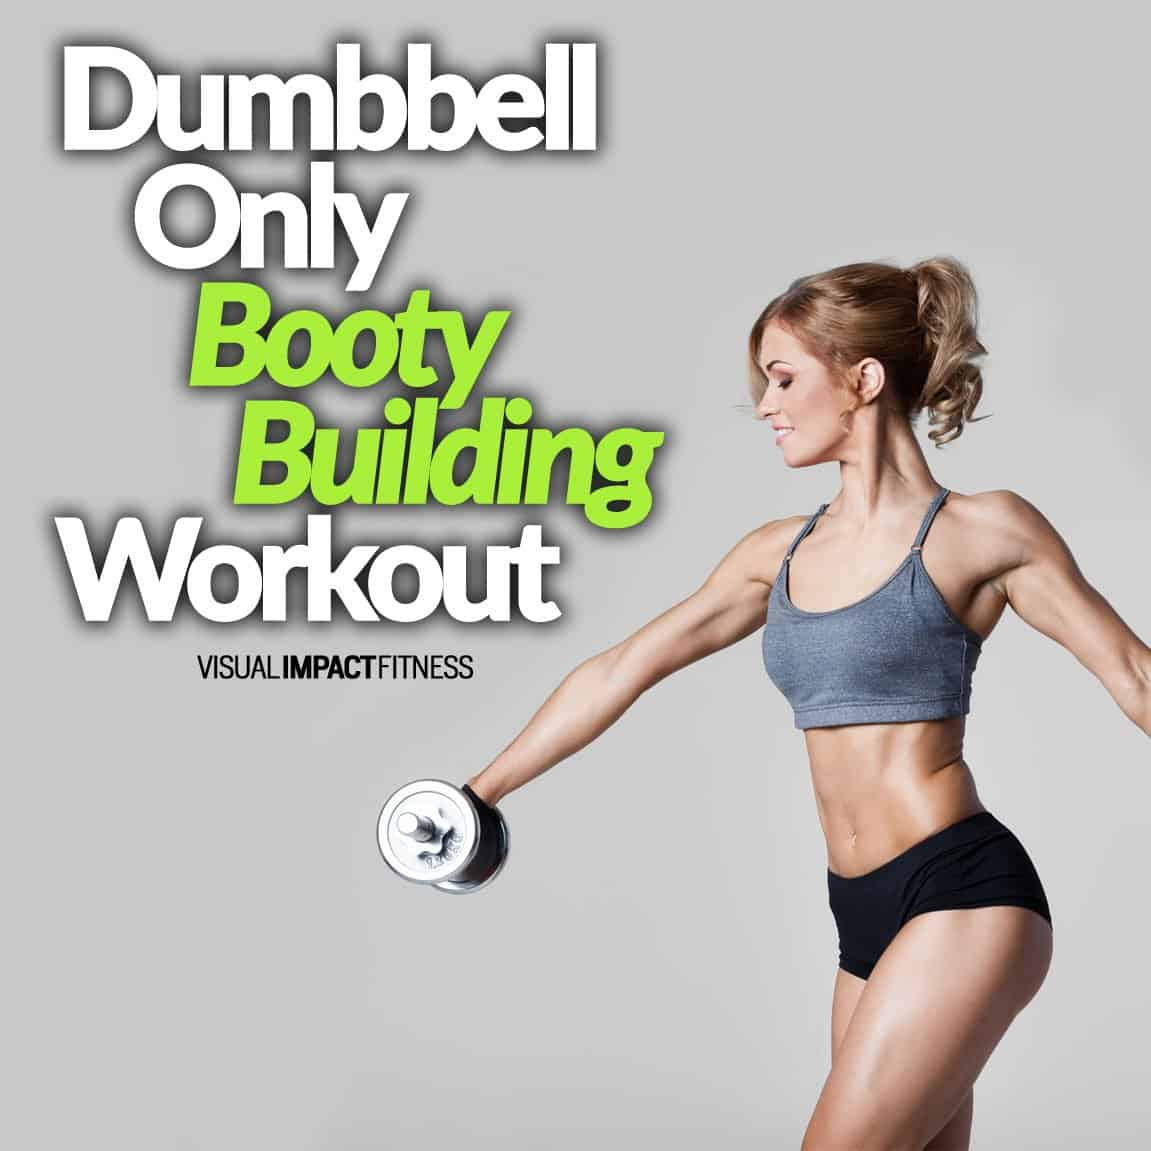 Dumbbell Only Booty Building Workout